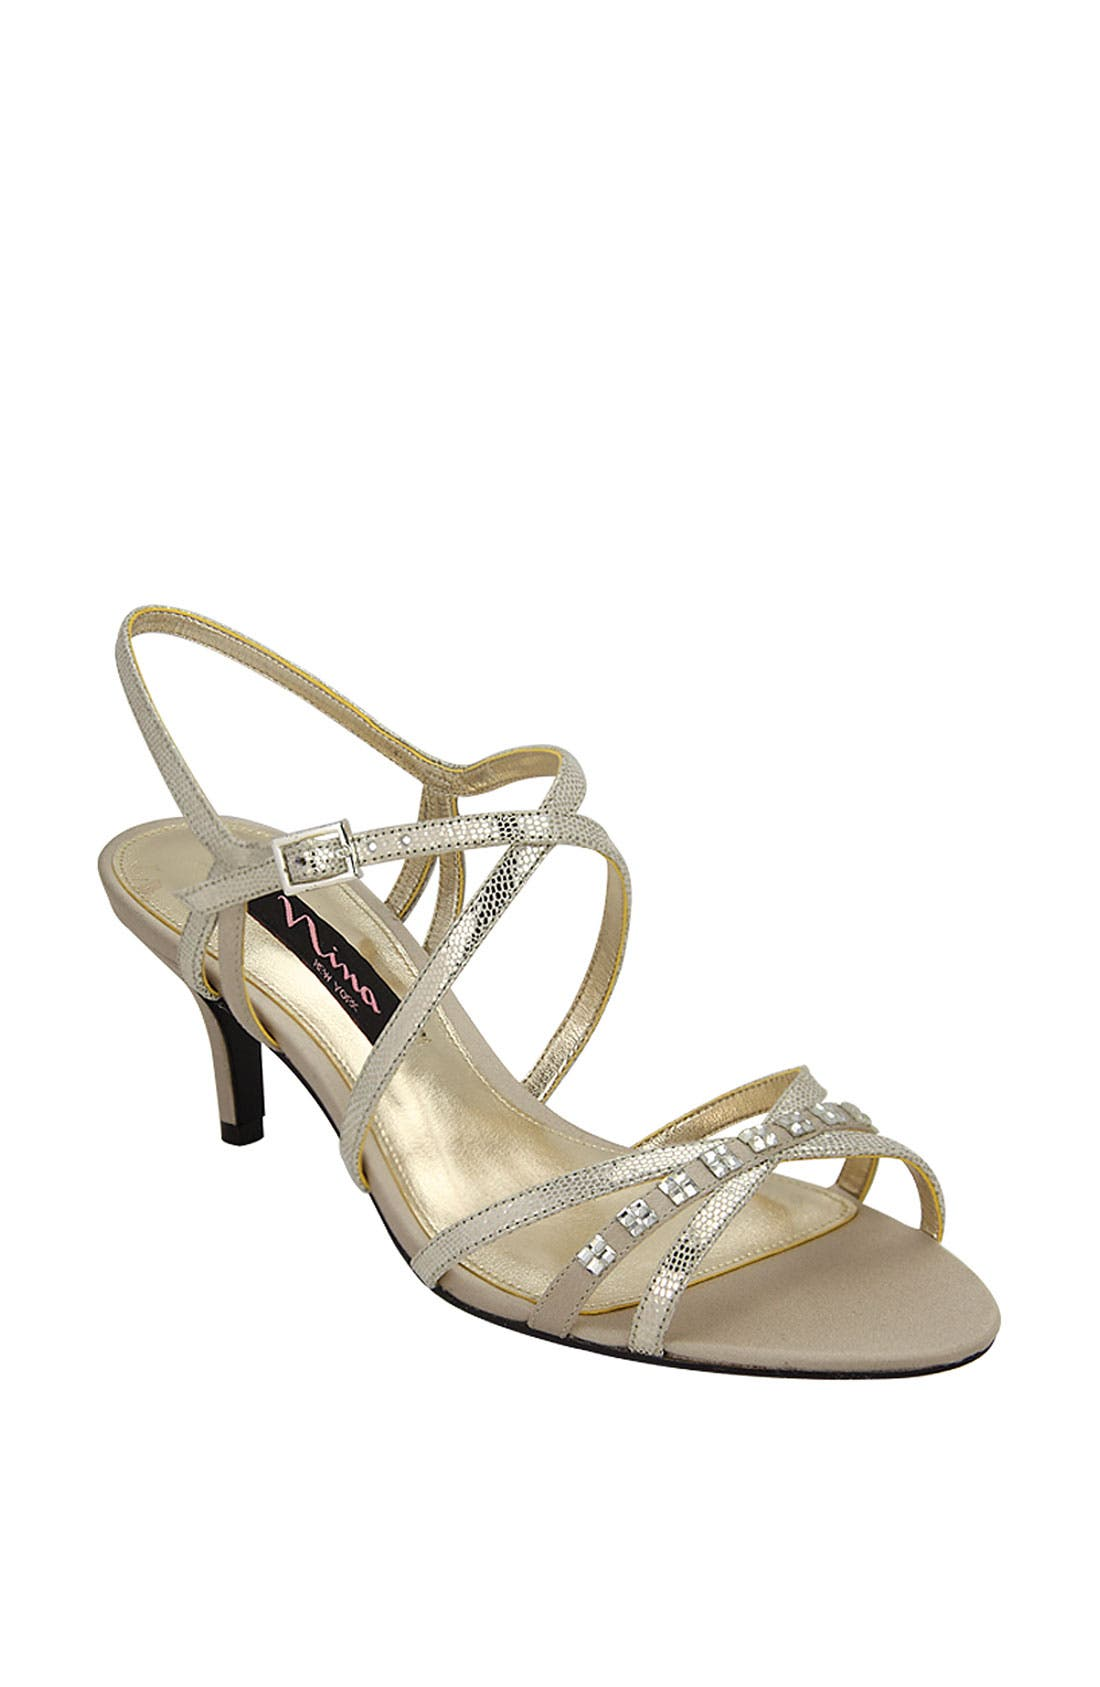 Alternate Image 1 Selected - Nina 'Curran' Sandal